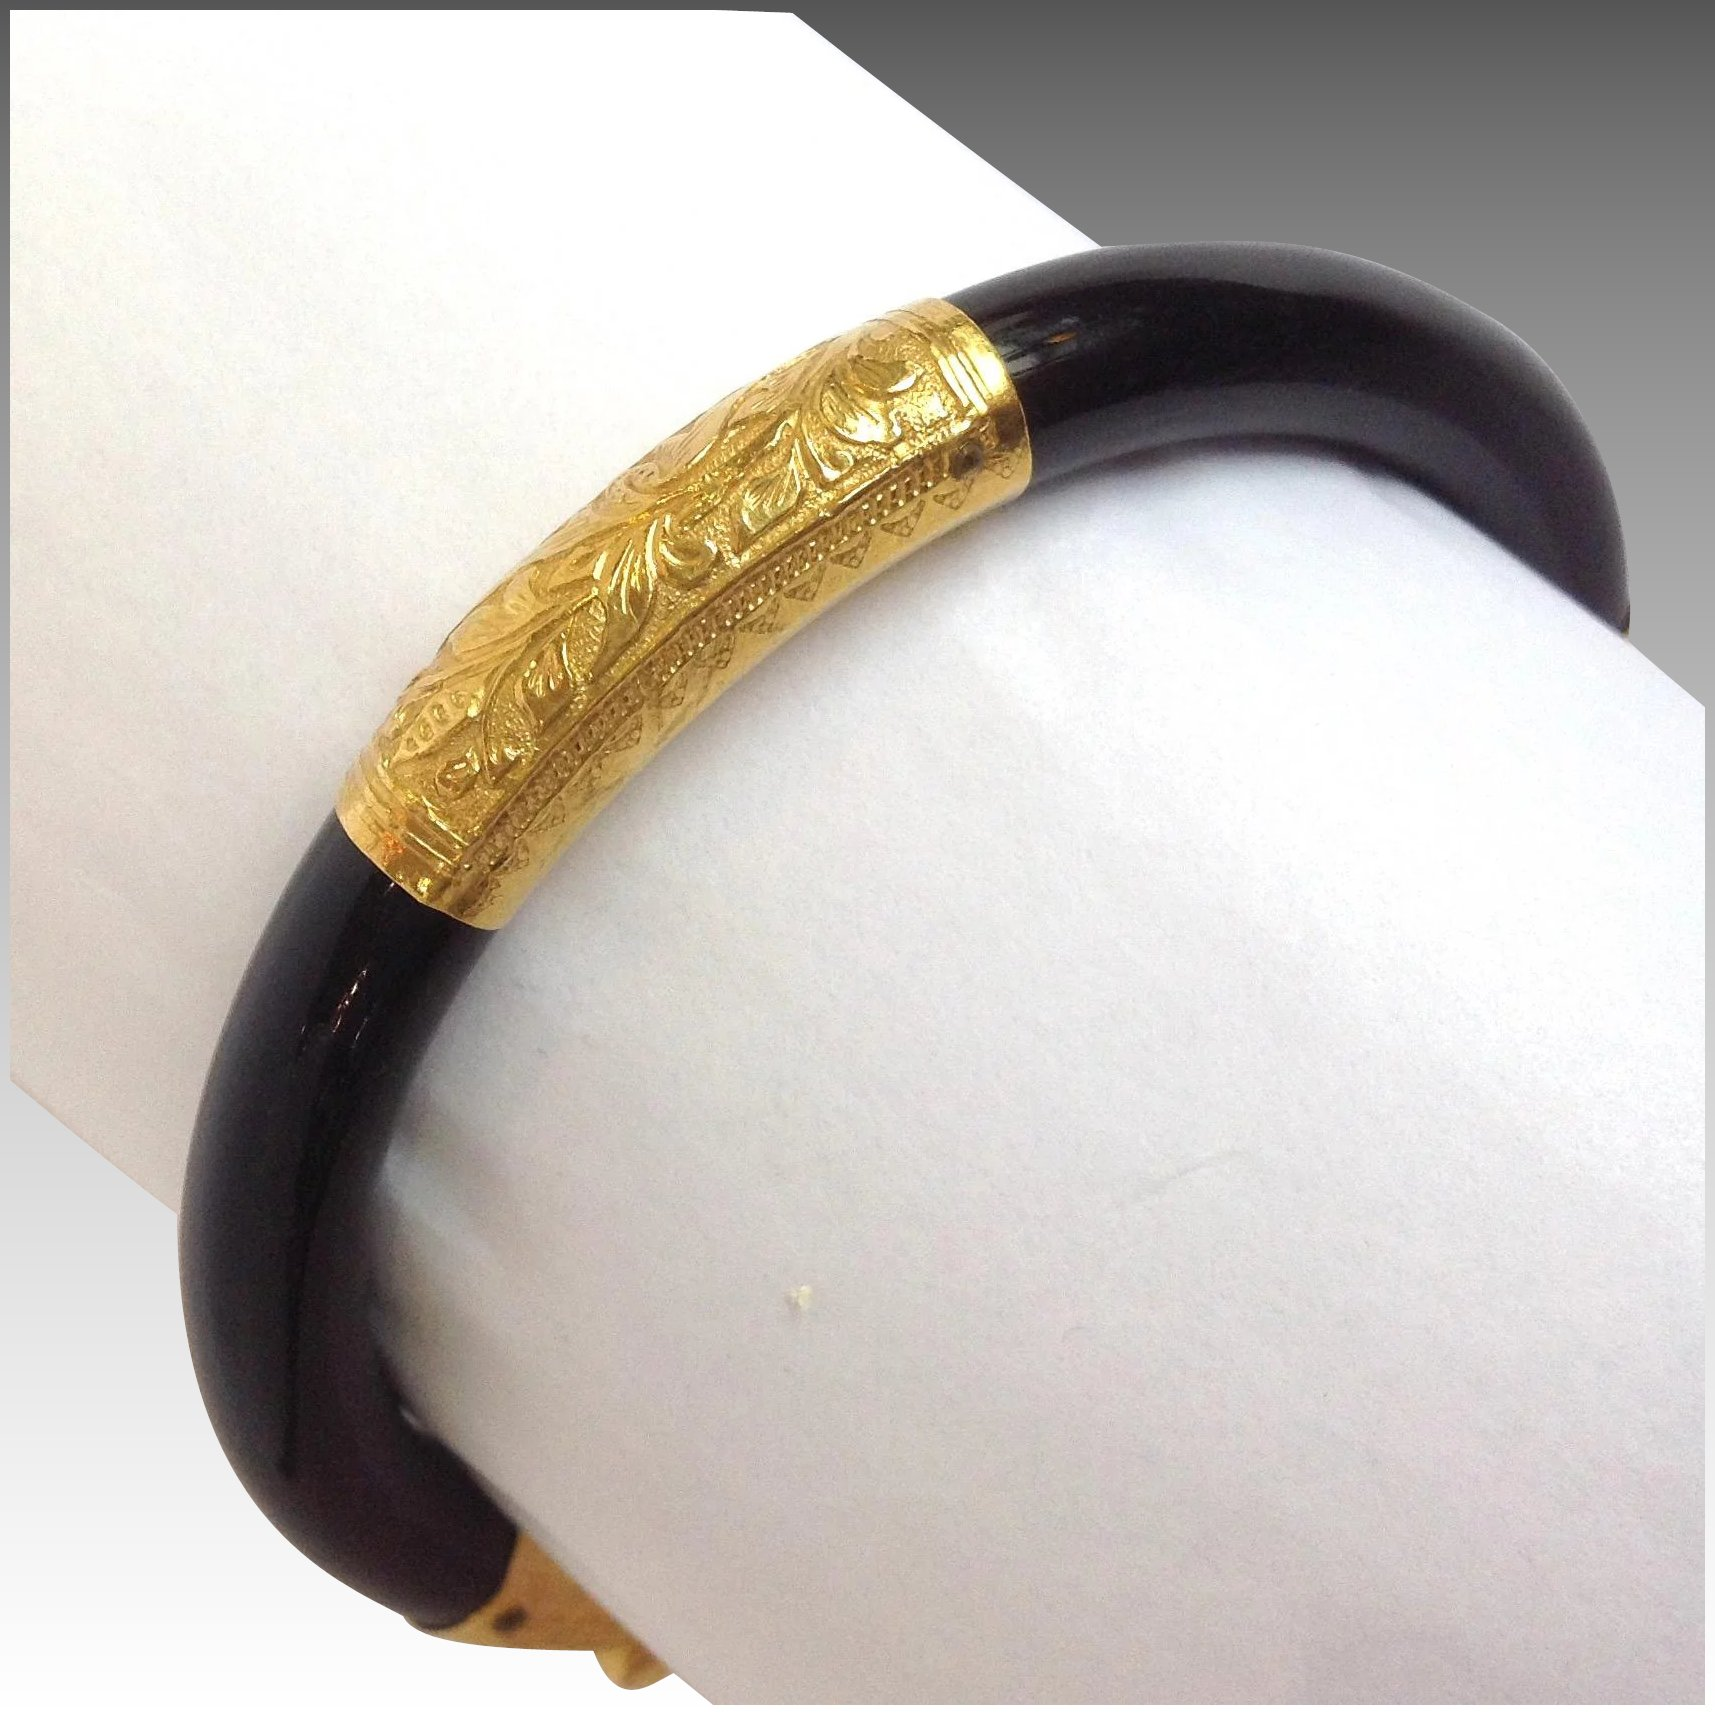 gold kada bracelets detail bangles karat product bangle usd water jewellery